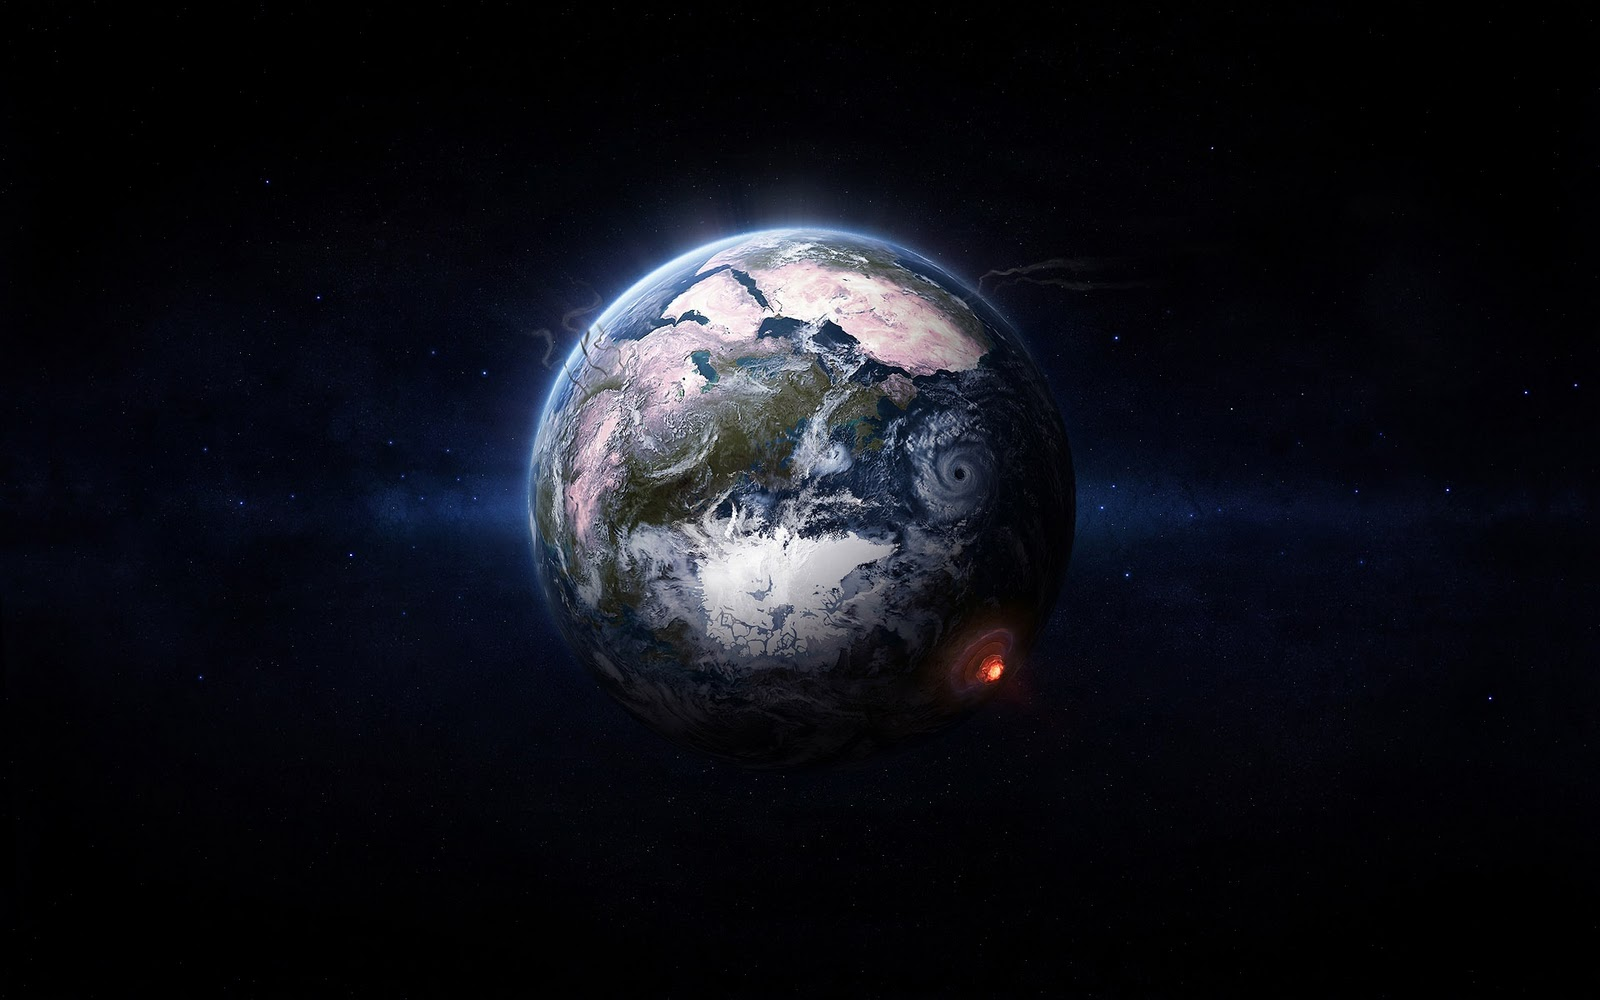 Wallpapers 0s Hd Space Wallpaper 3d Graphics Nuclear Explosion 1 1600 1600x1000